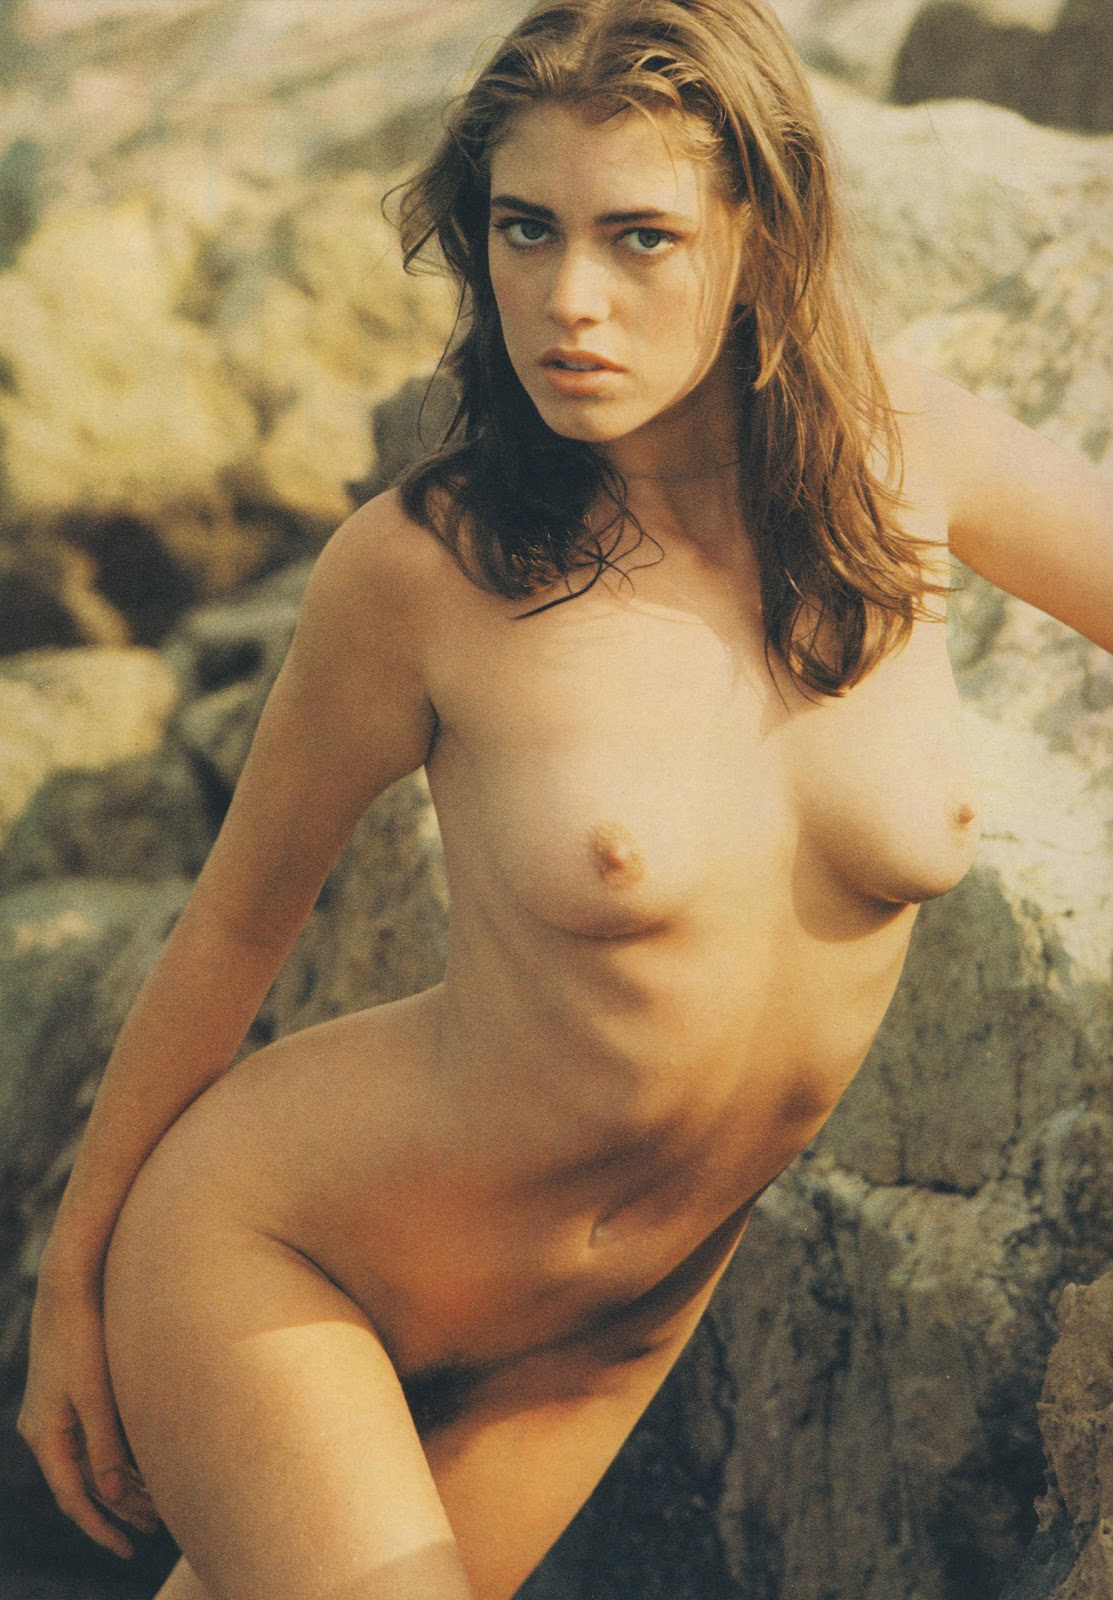 Lisa howard nude